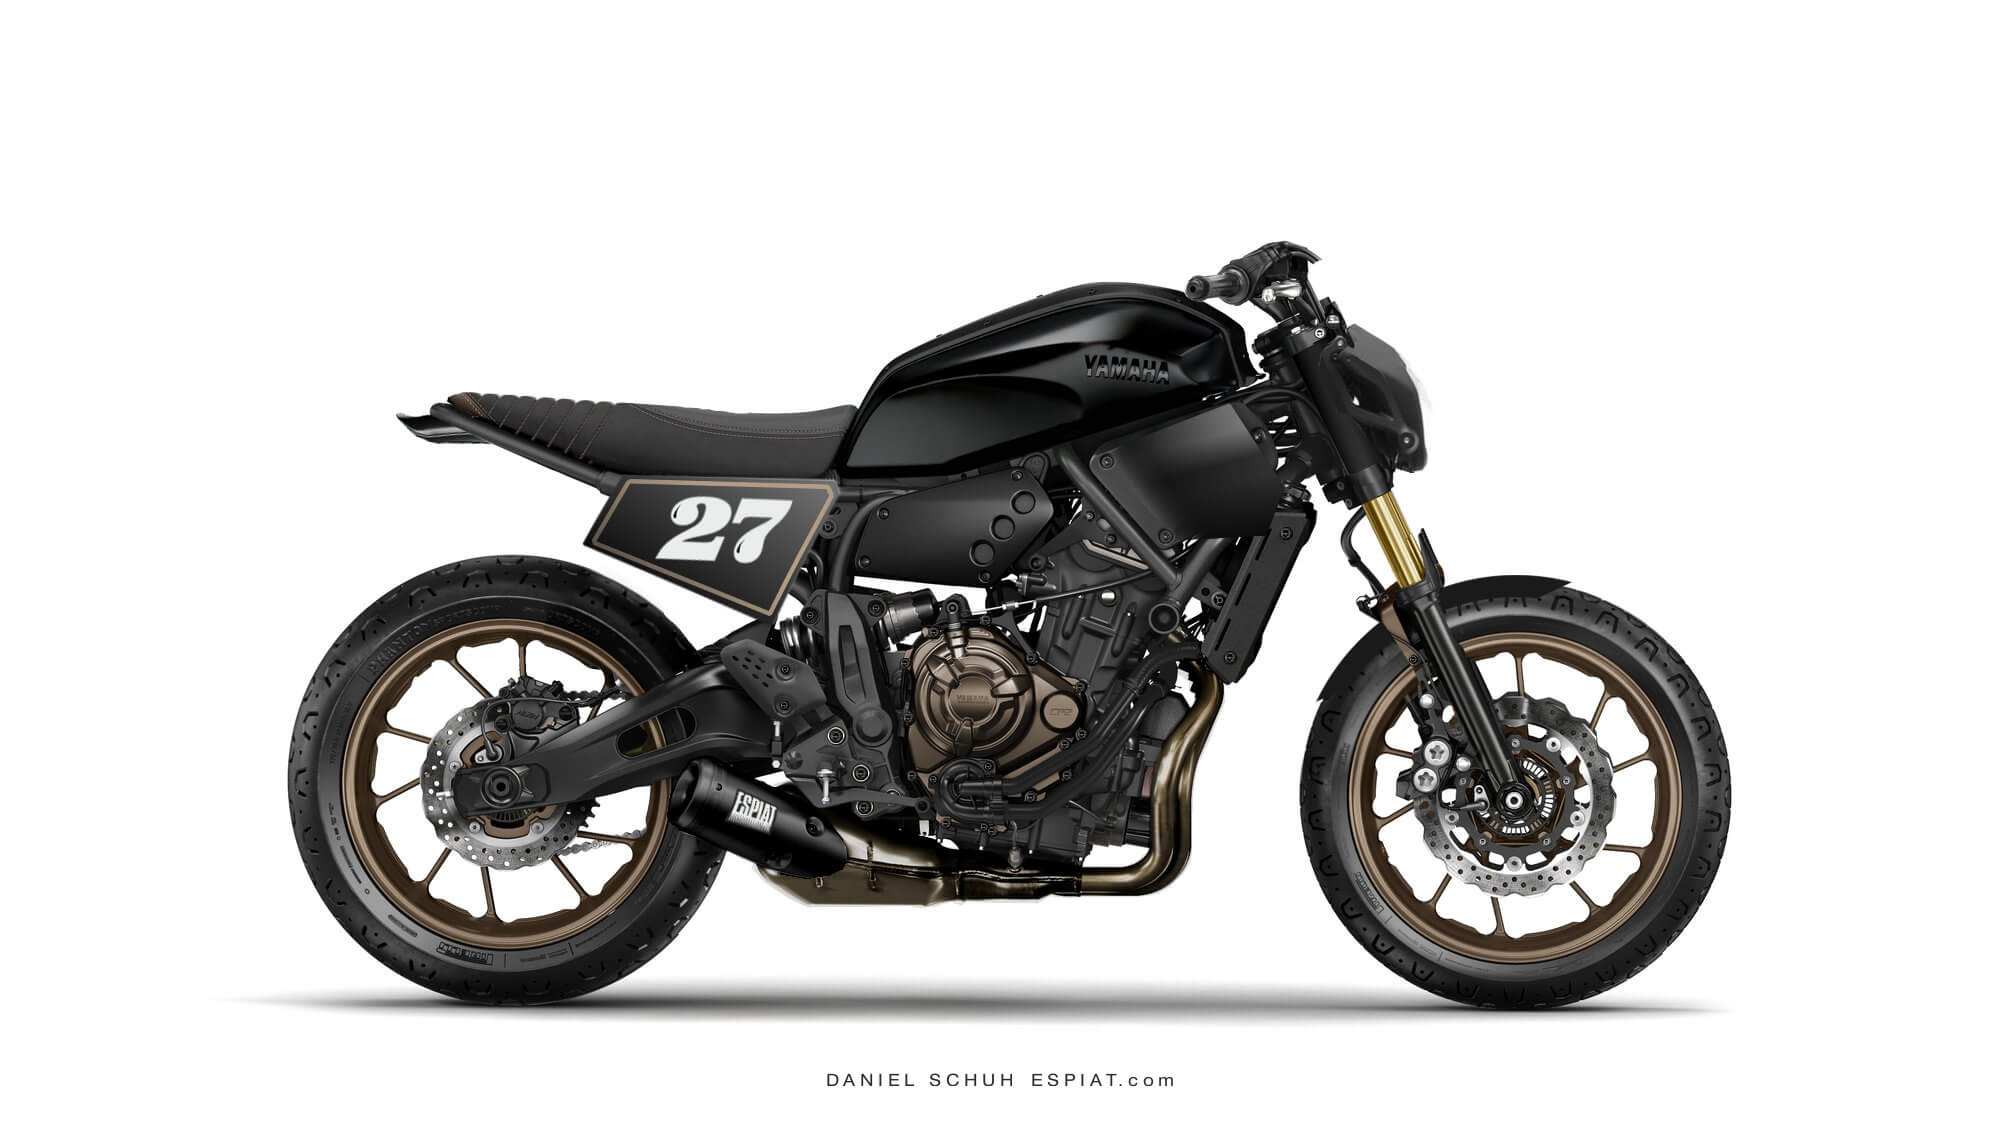 yamaha xsr700 cafe racer und street tracker umbau espiat. Black Bedroom Furniture Sets. Home Design Ideas